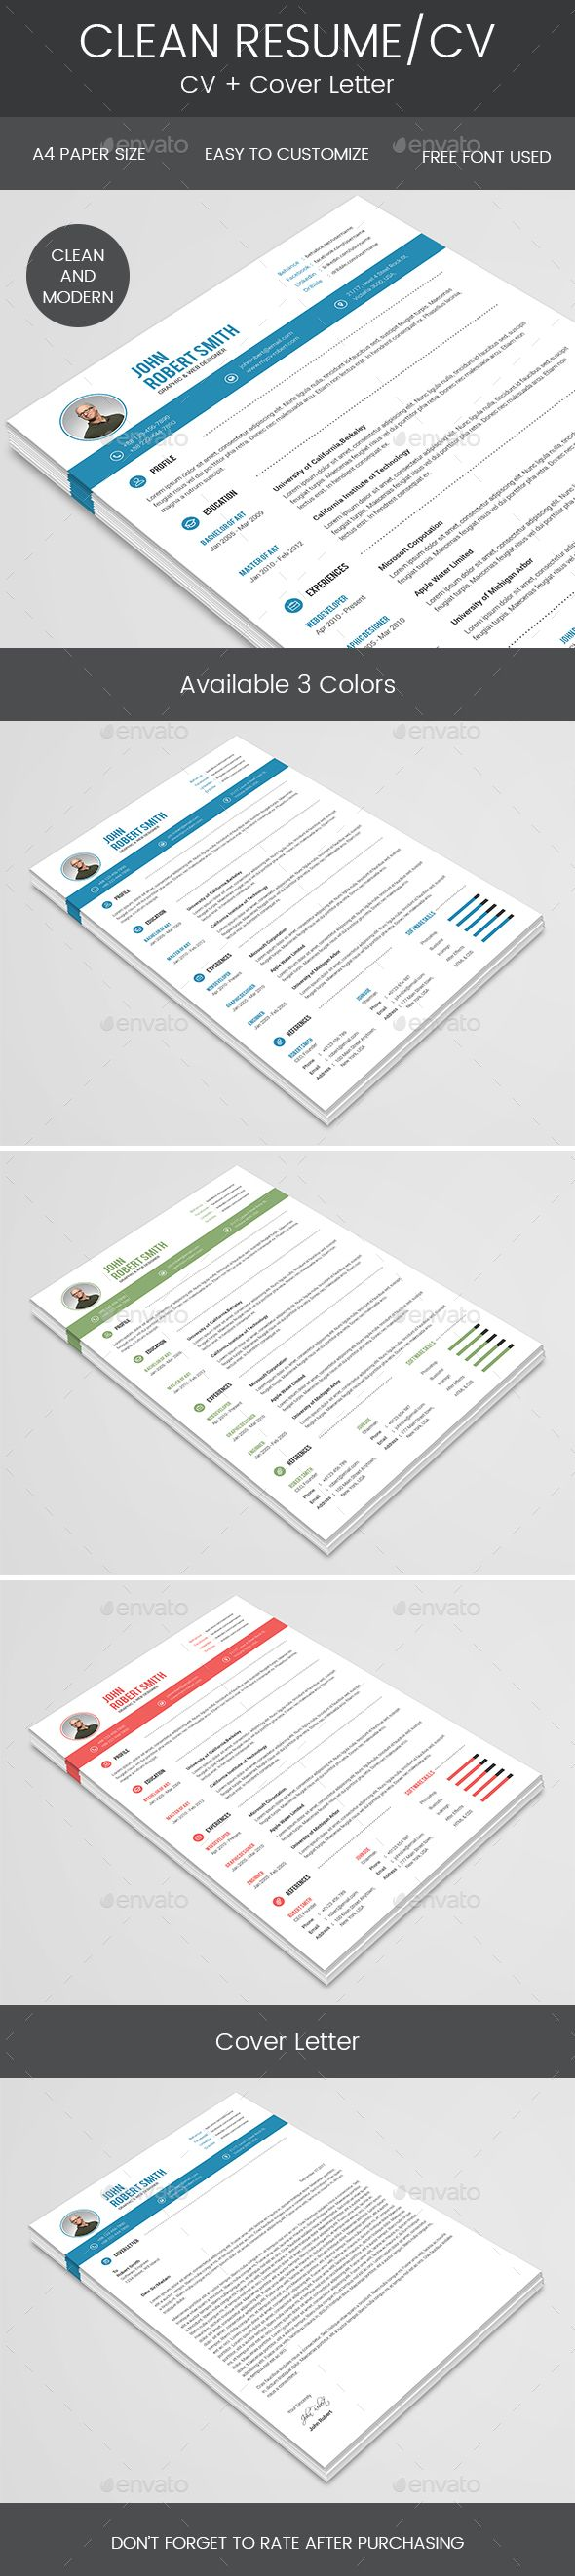 Clean Resume u0026 Cover Letter 14 best